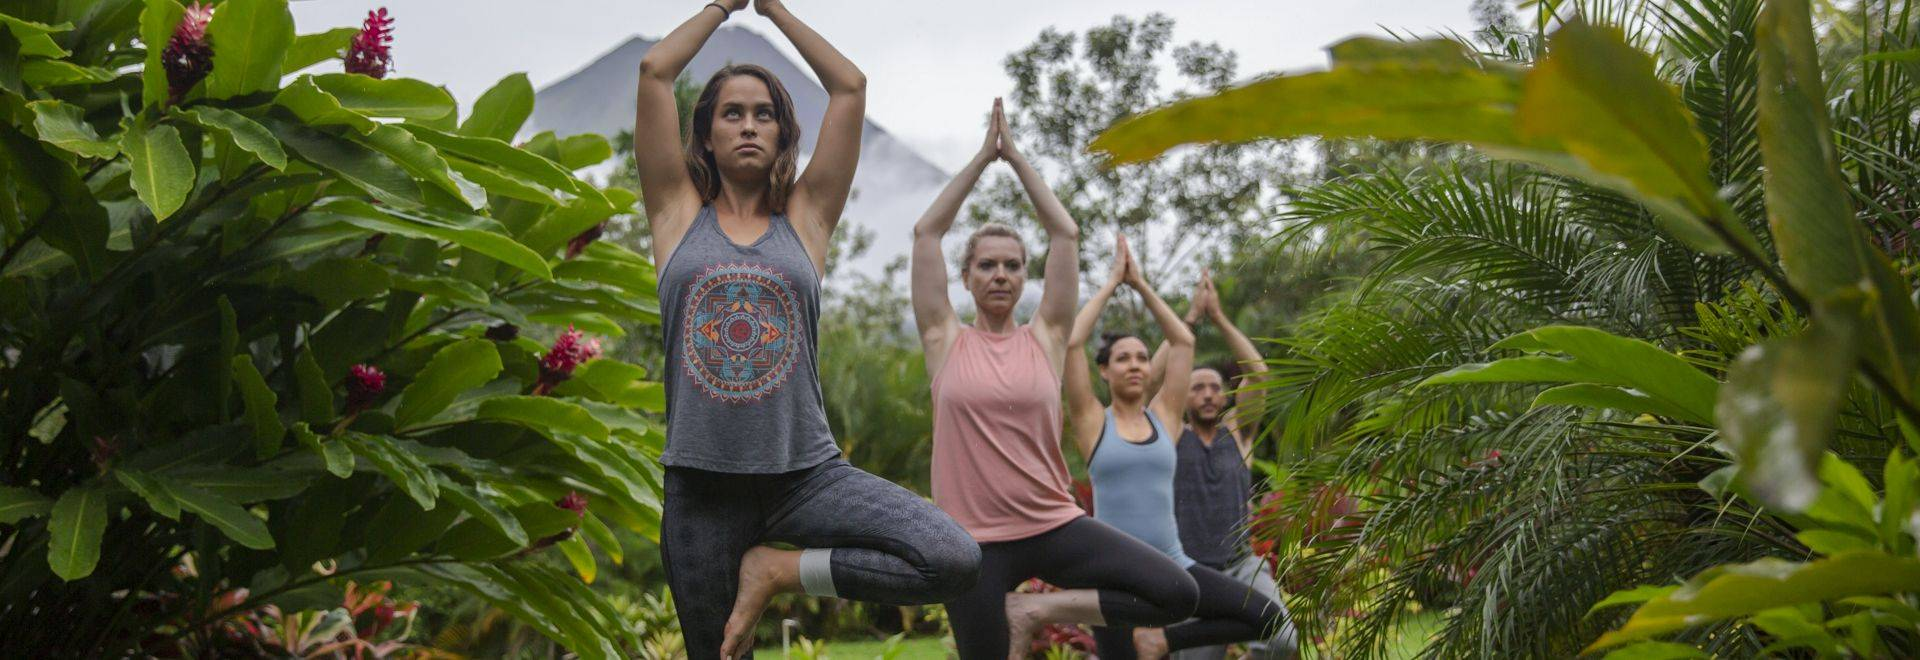 Costa Rica La Fortuna Arenal Volcano Hotel Garden Yoga Class CEO Group Tree Pose - 2018 0W3A7767 Lg RGB.jpg